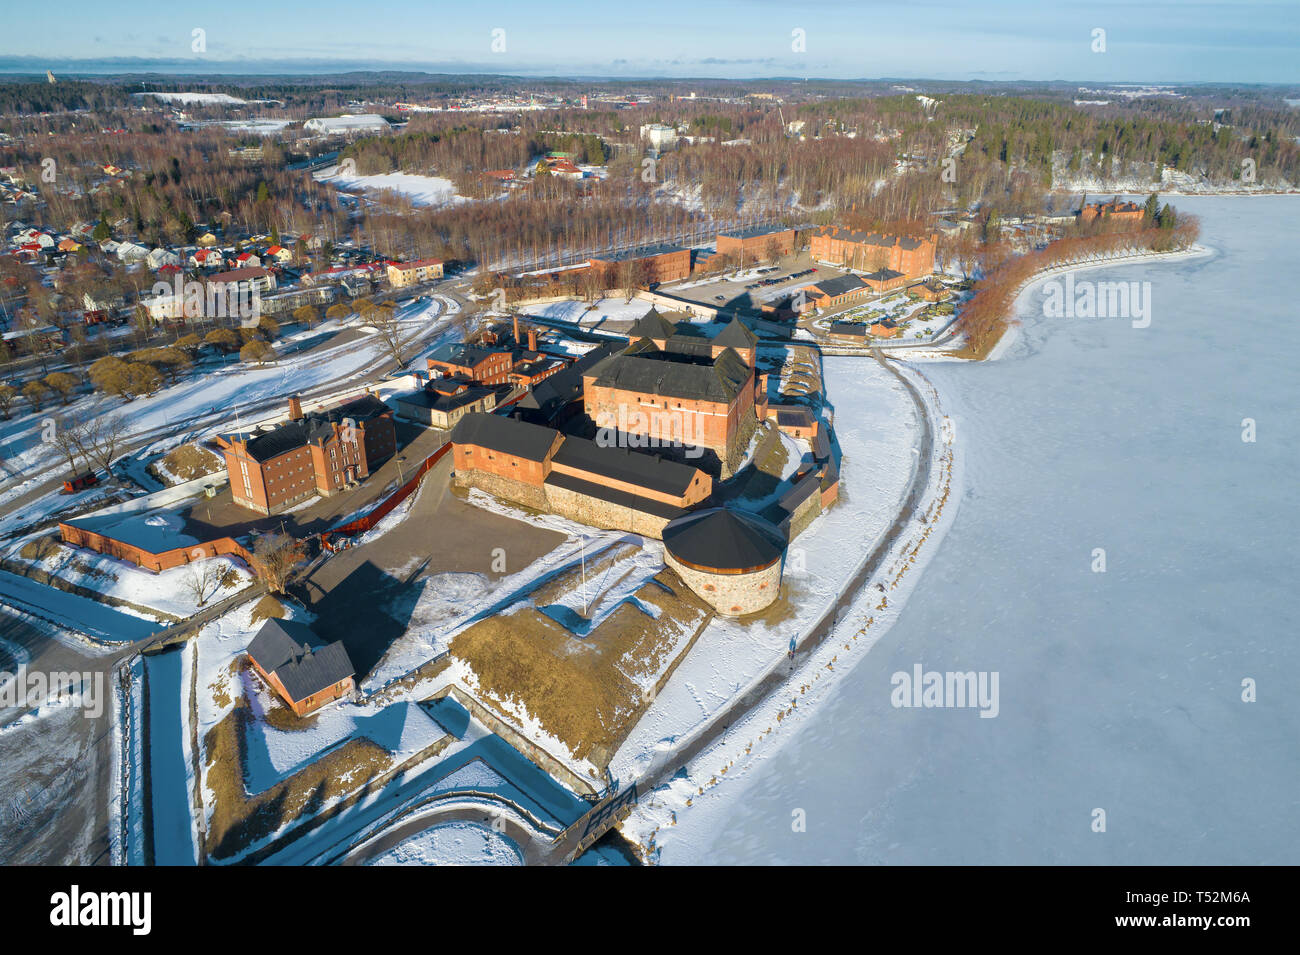 A view from the heights of the ancient Hameenlinna fortress on a sunny March day. Finland Stock Photo